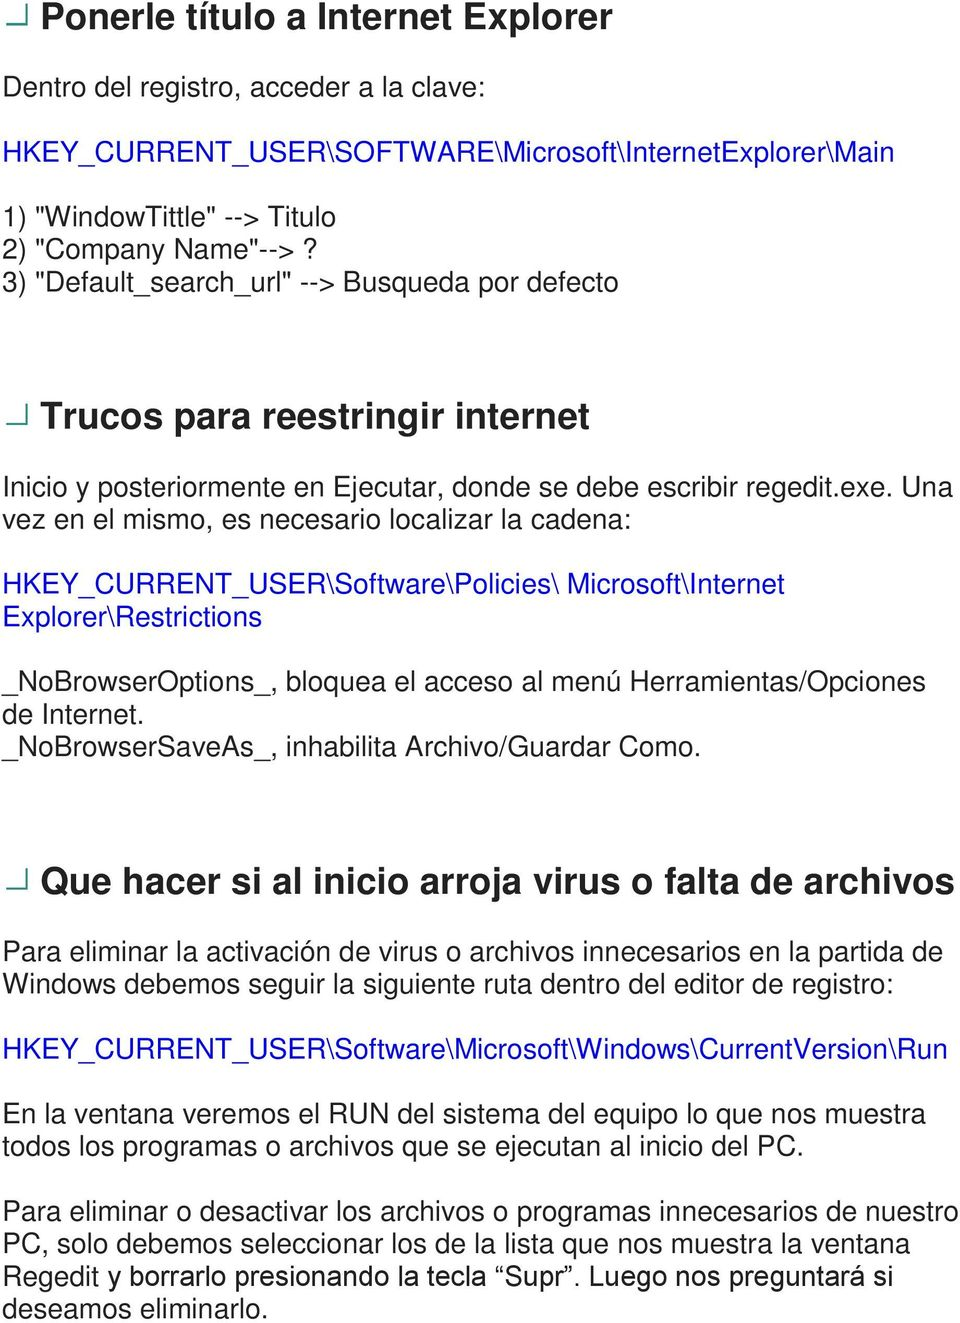 Una vez en el mismo, es necesario localizar la cadena: HKEY_CURRENT_USER\Software\Policies\ Microsoft\Internet Explorer\Restrictions _NoBrowserOptions_, bloquea el acceso al menú